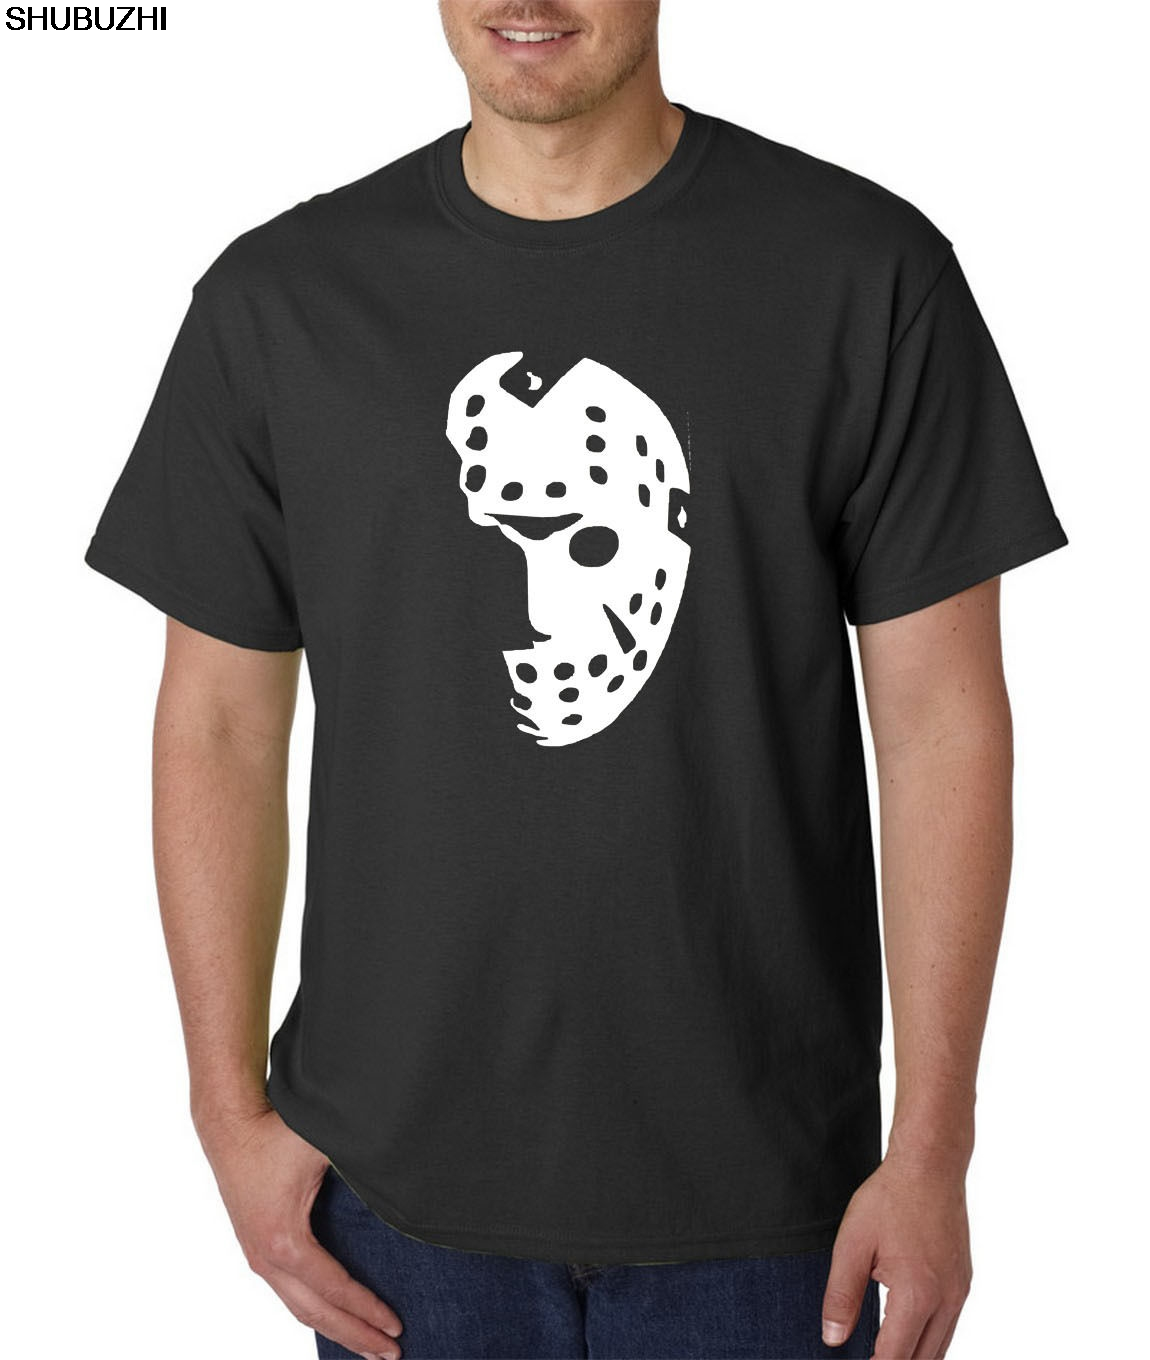 Friday The 13th Jason Voorhees Horror Freddy Comfortable T Shirt,casual Short Sleeve Tee Sbz4300 We Have Won Praise From Customers Halloween Hockey Mask T-shirt Tops & Tees Men's Clothing